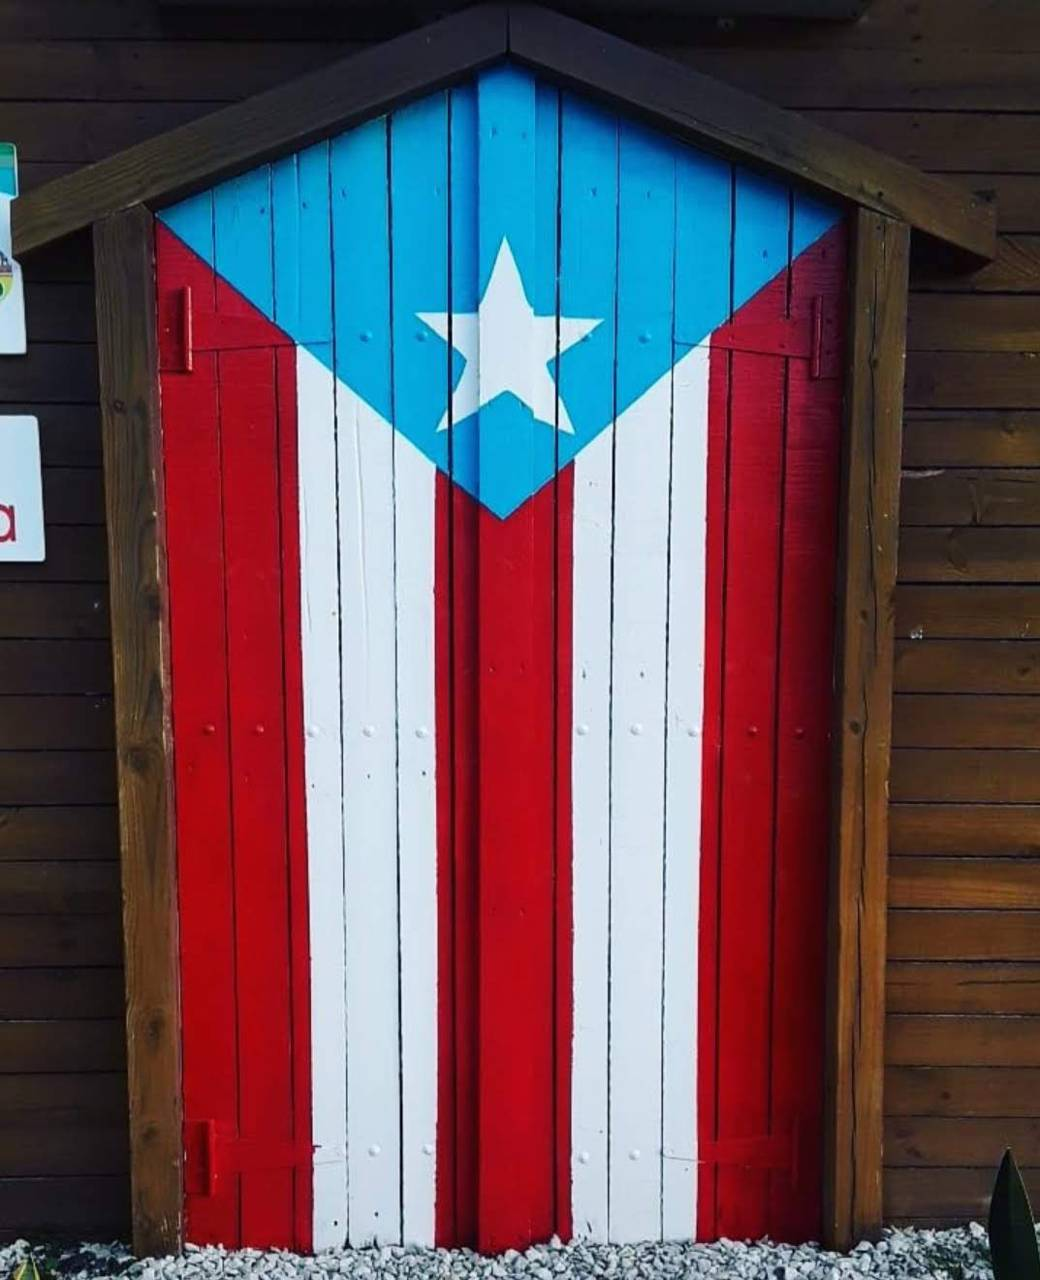 Puerto Rico Flag Wallpaper By Dcruzjr 86 Free On Zedge